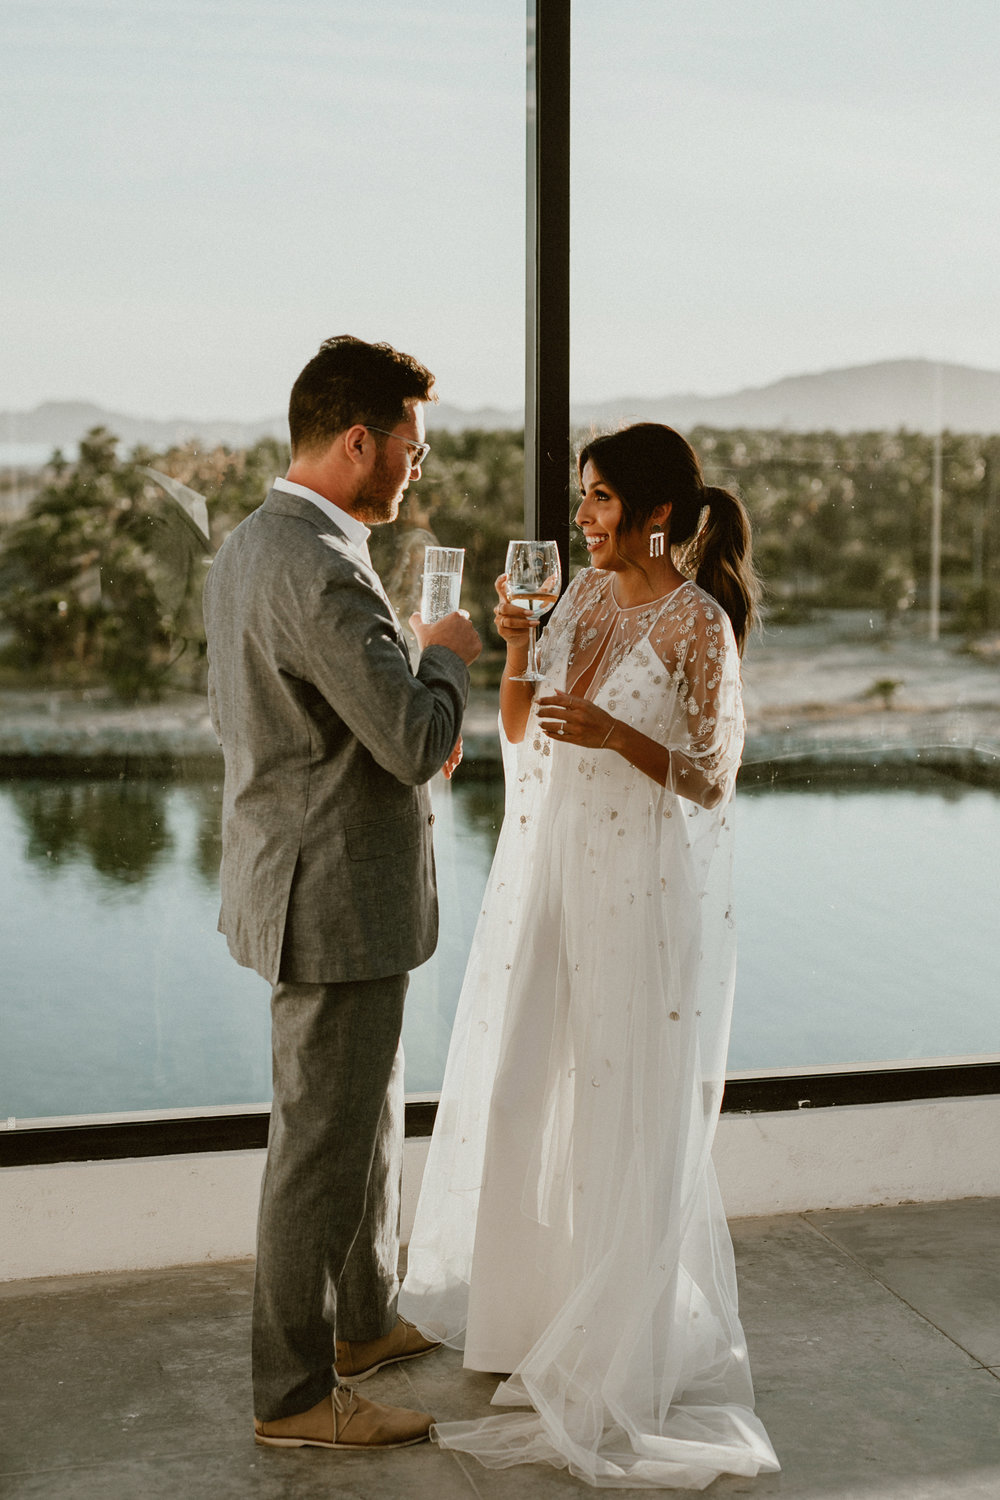 Los Cabos Wedding | White Jumpsuit + Cape for Wedding Welcome Reception